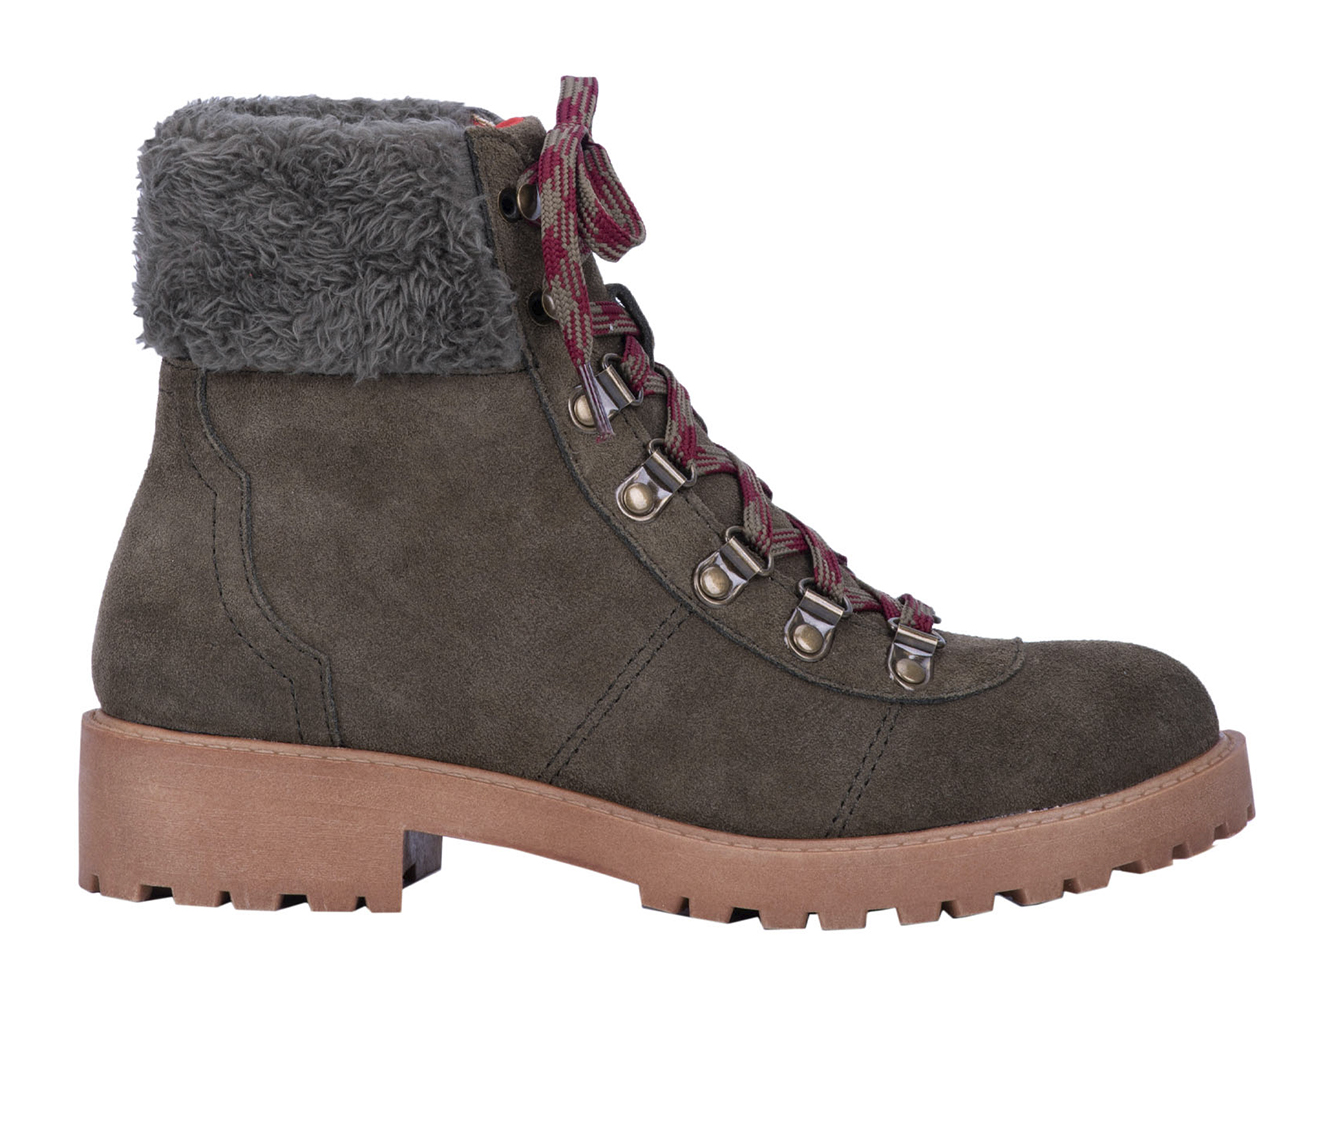 Dingo Boots Telluride Women's Boots (Green - Leather)